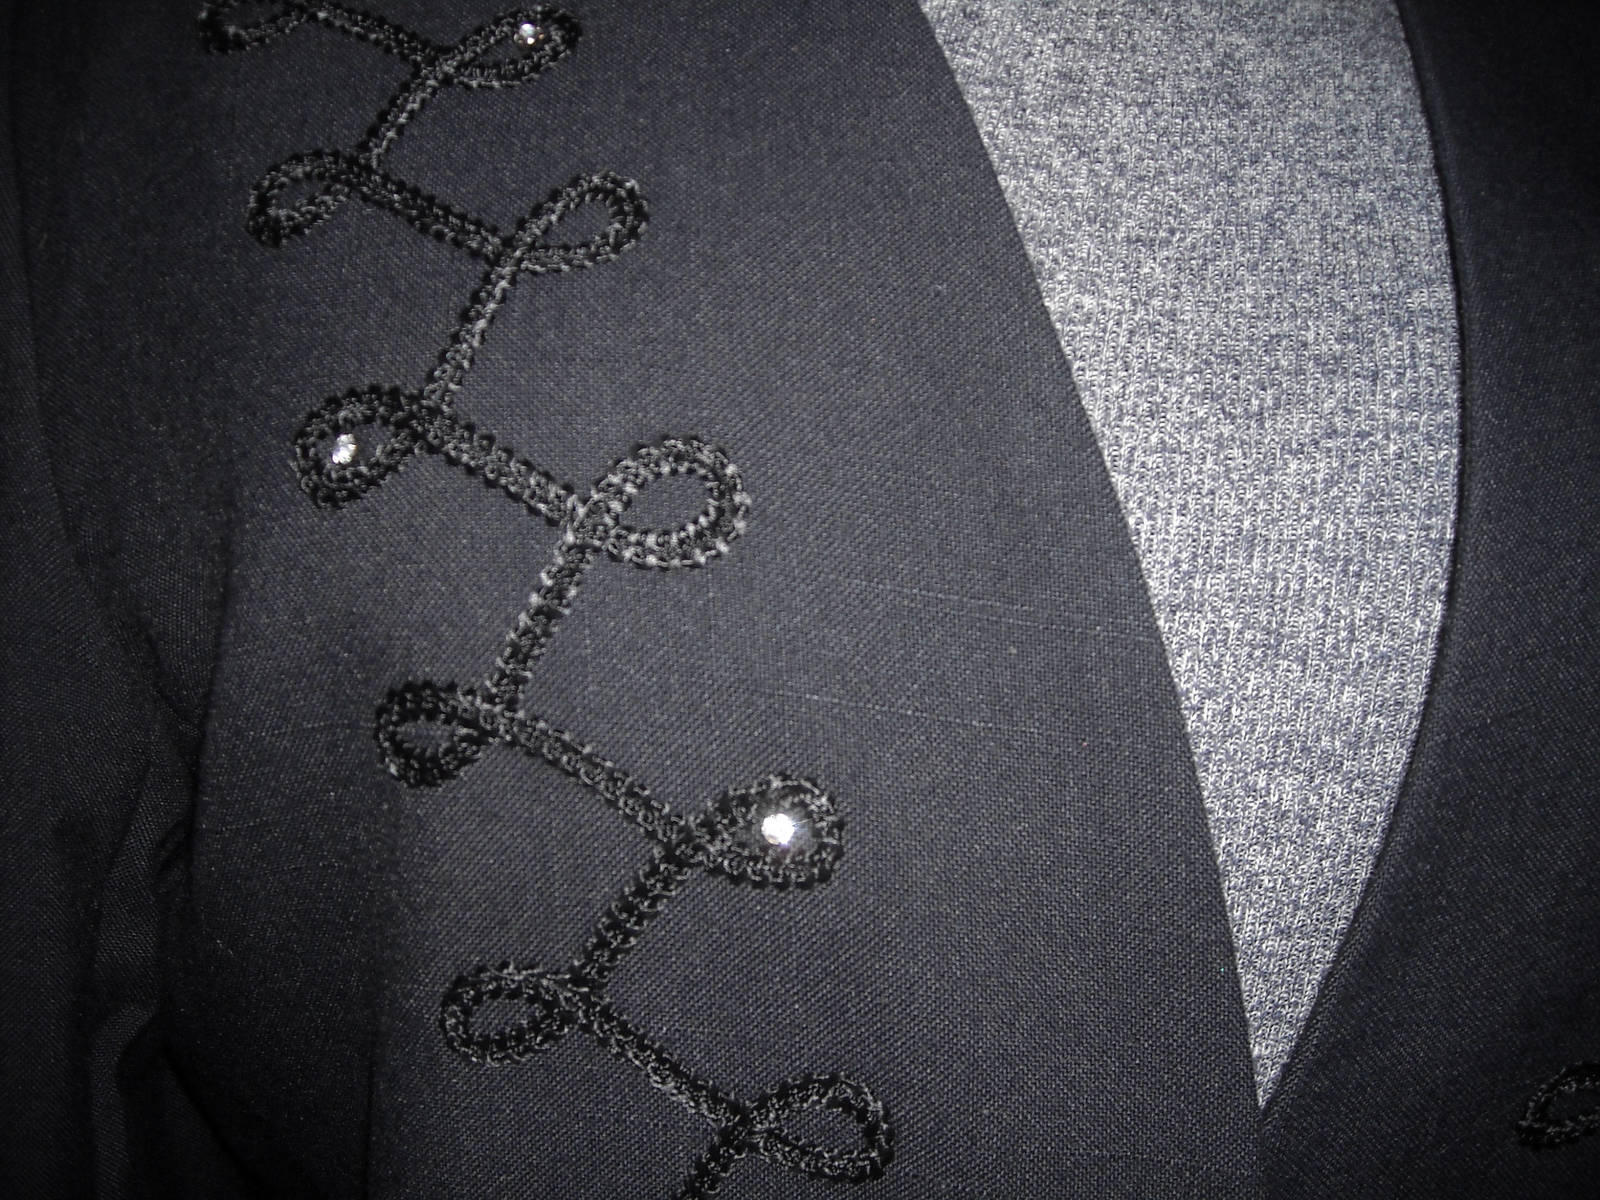 Women's Executive Collection Black Dress Jacket With Embroidery & Rhinestones 14 image 3